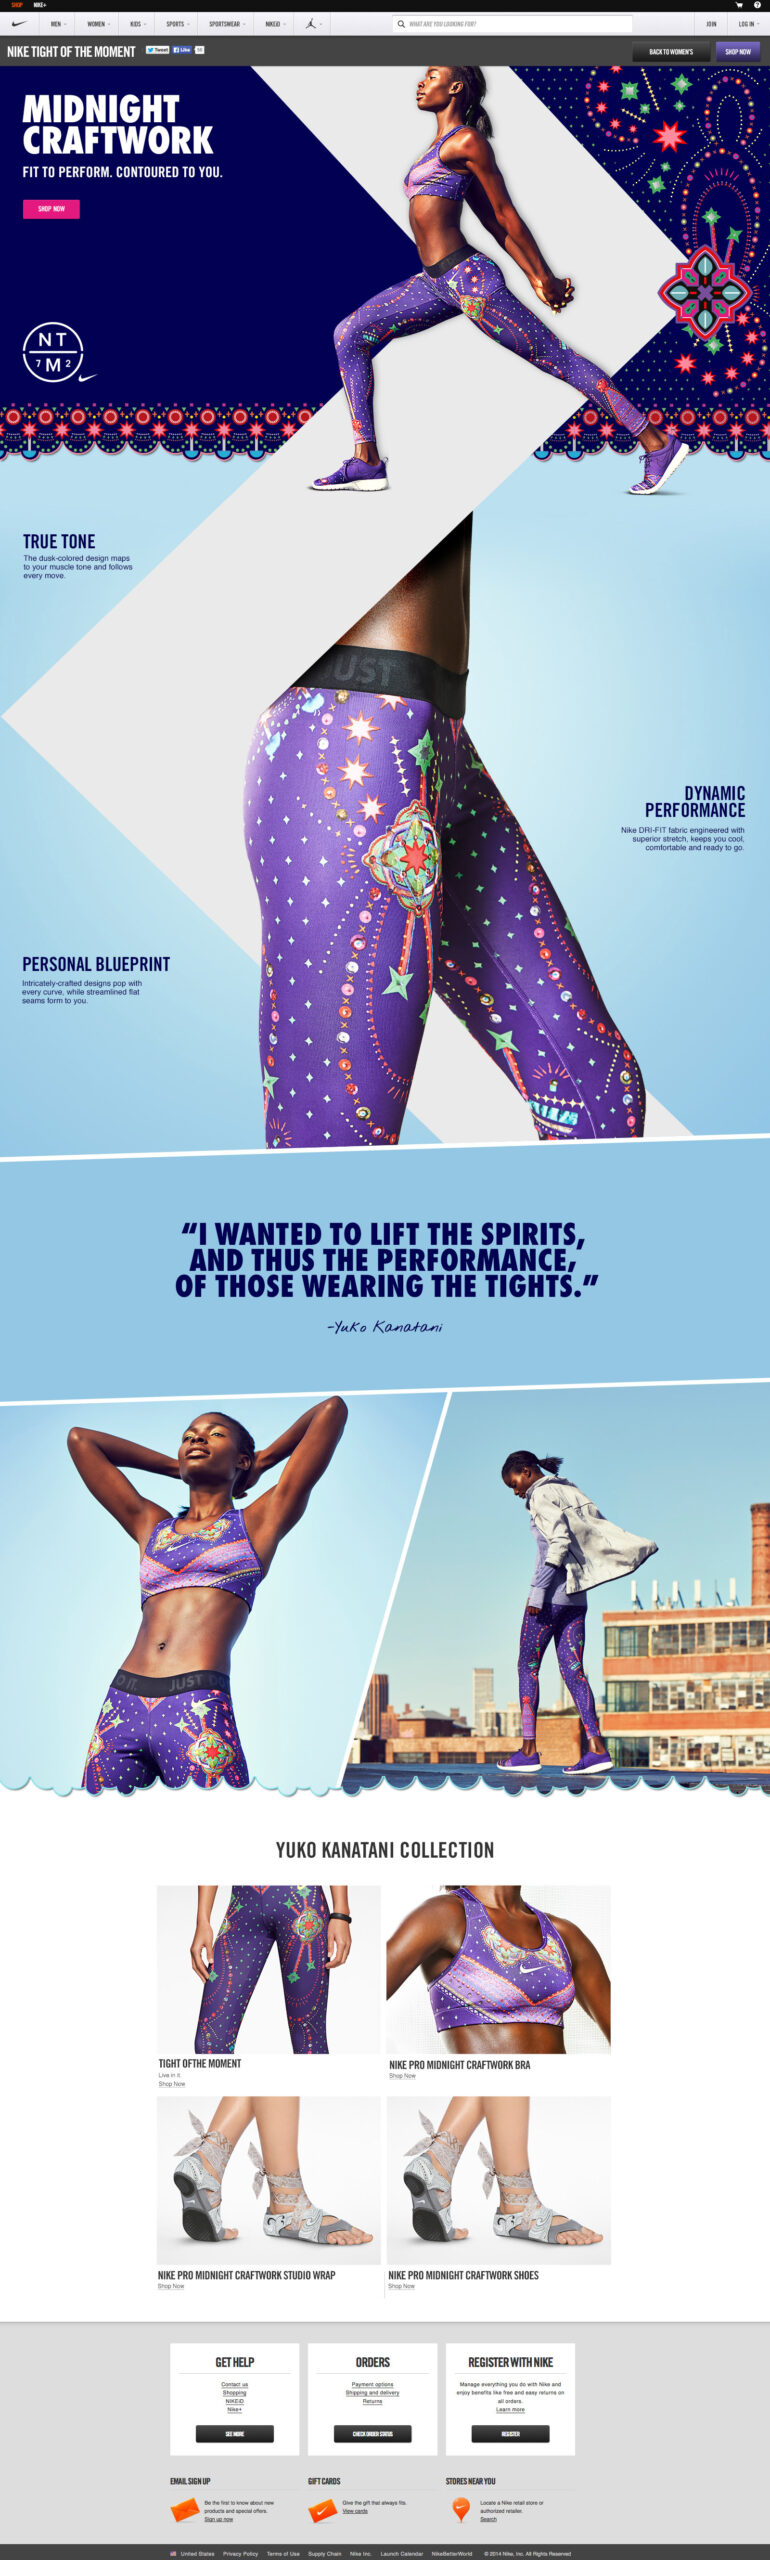 webdesign inspiration nike tights of the moment scaled design habitat